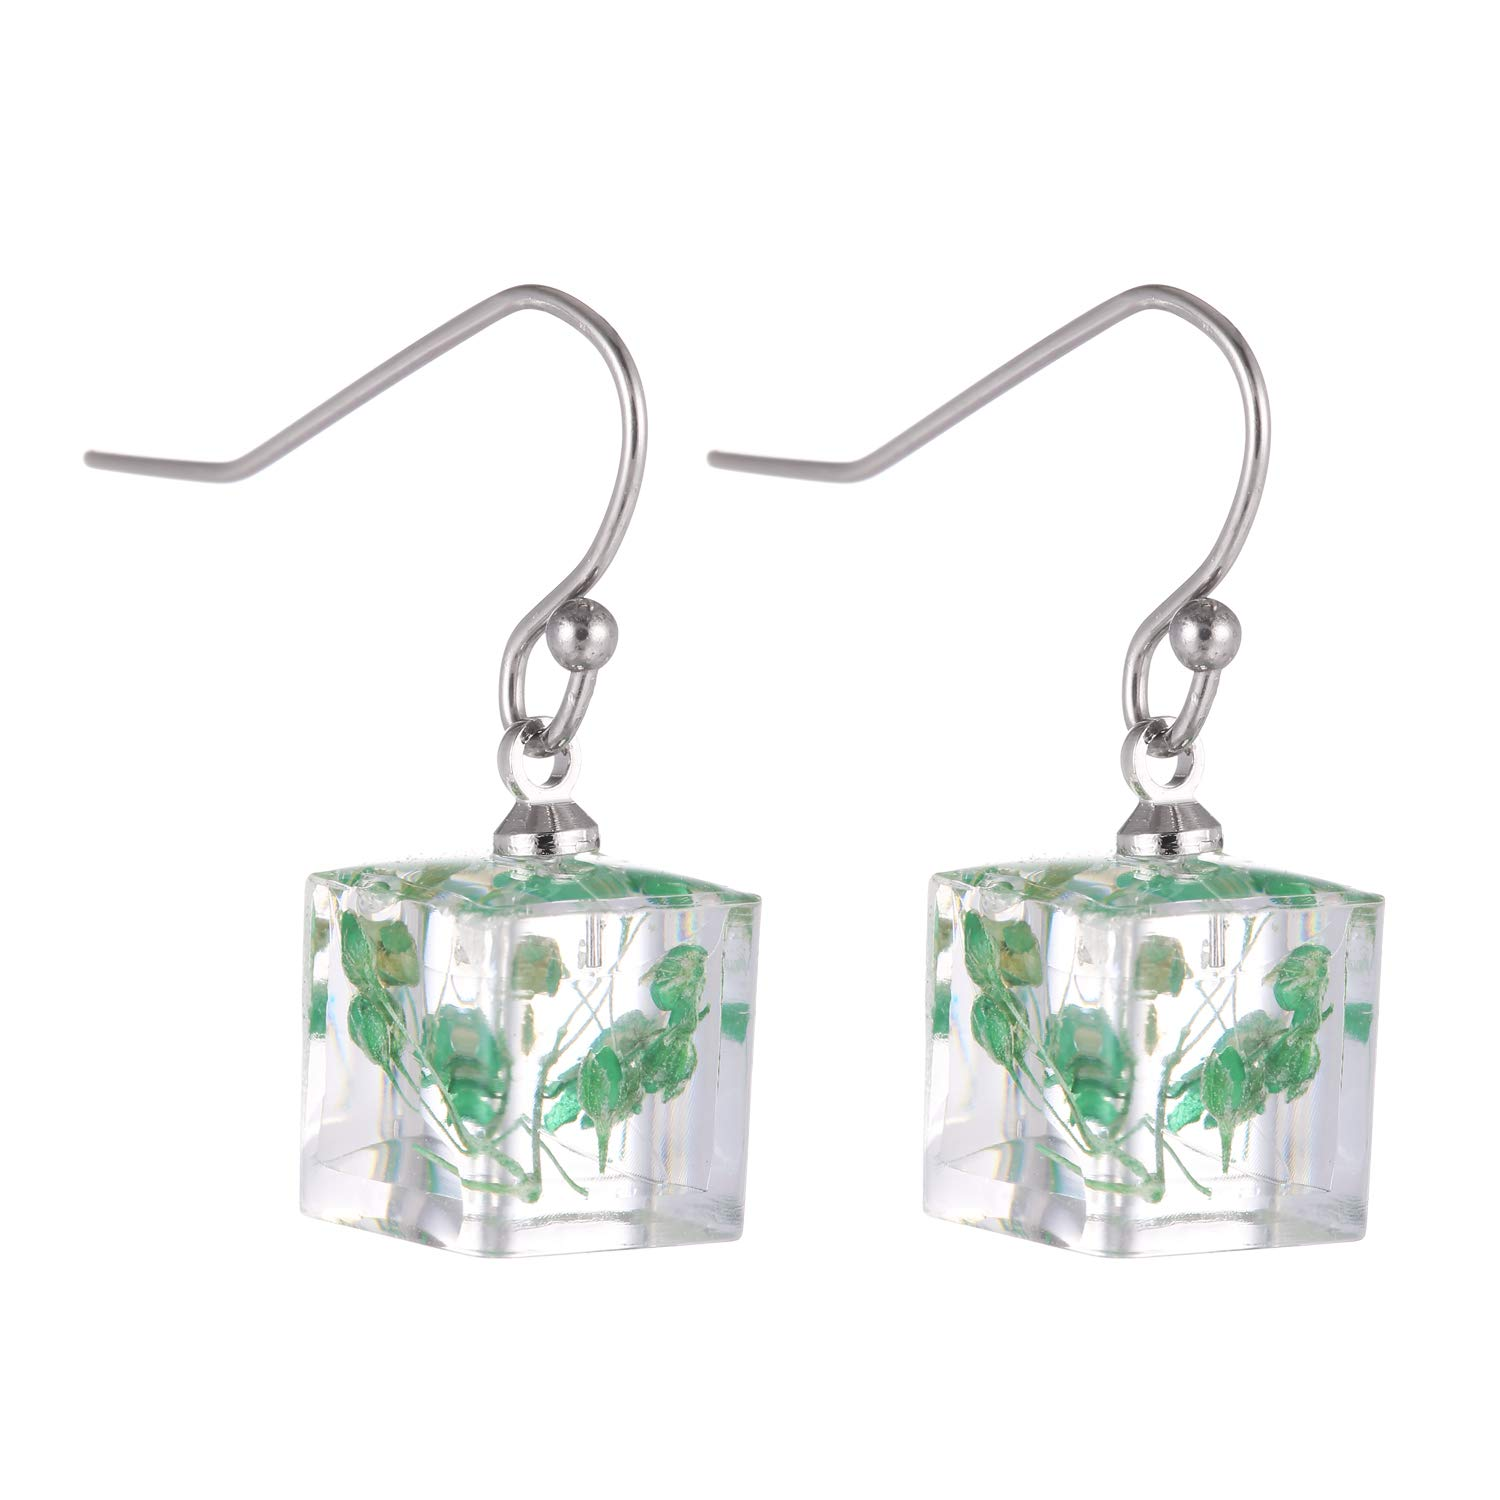 FM FM42 Blue Pink Red Yellow Dried Natural Flowers 0.35 Small Simulated Resin Square Cube Drop Hook Earrings 4 Colors